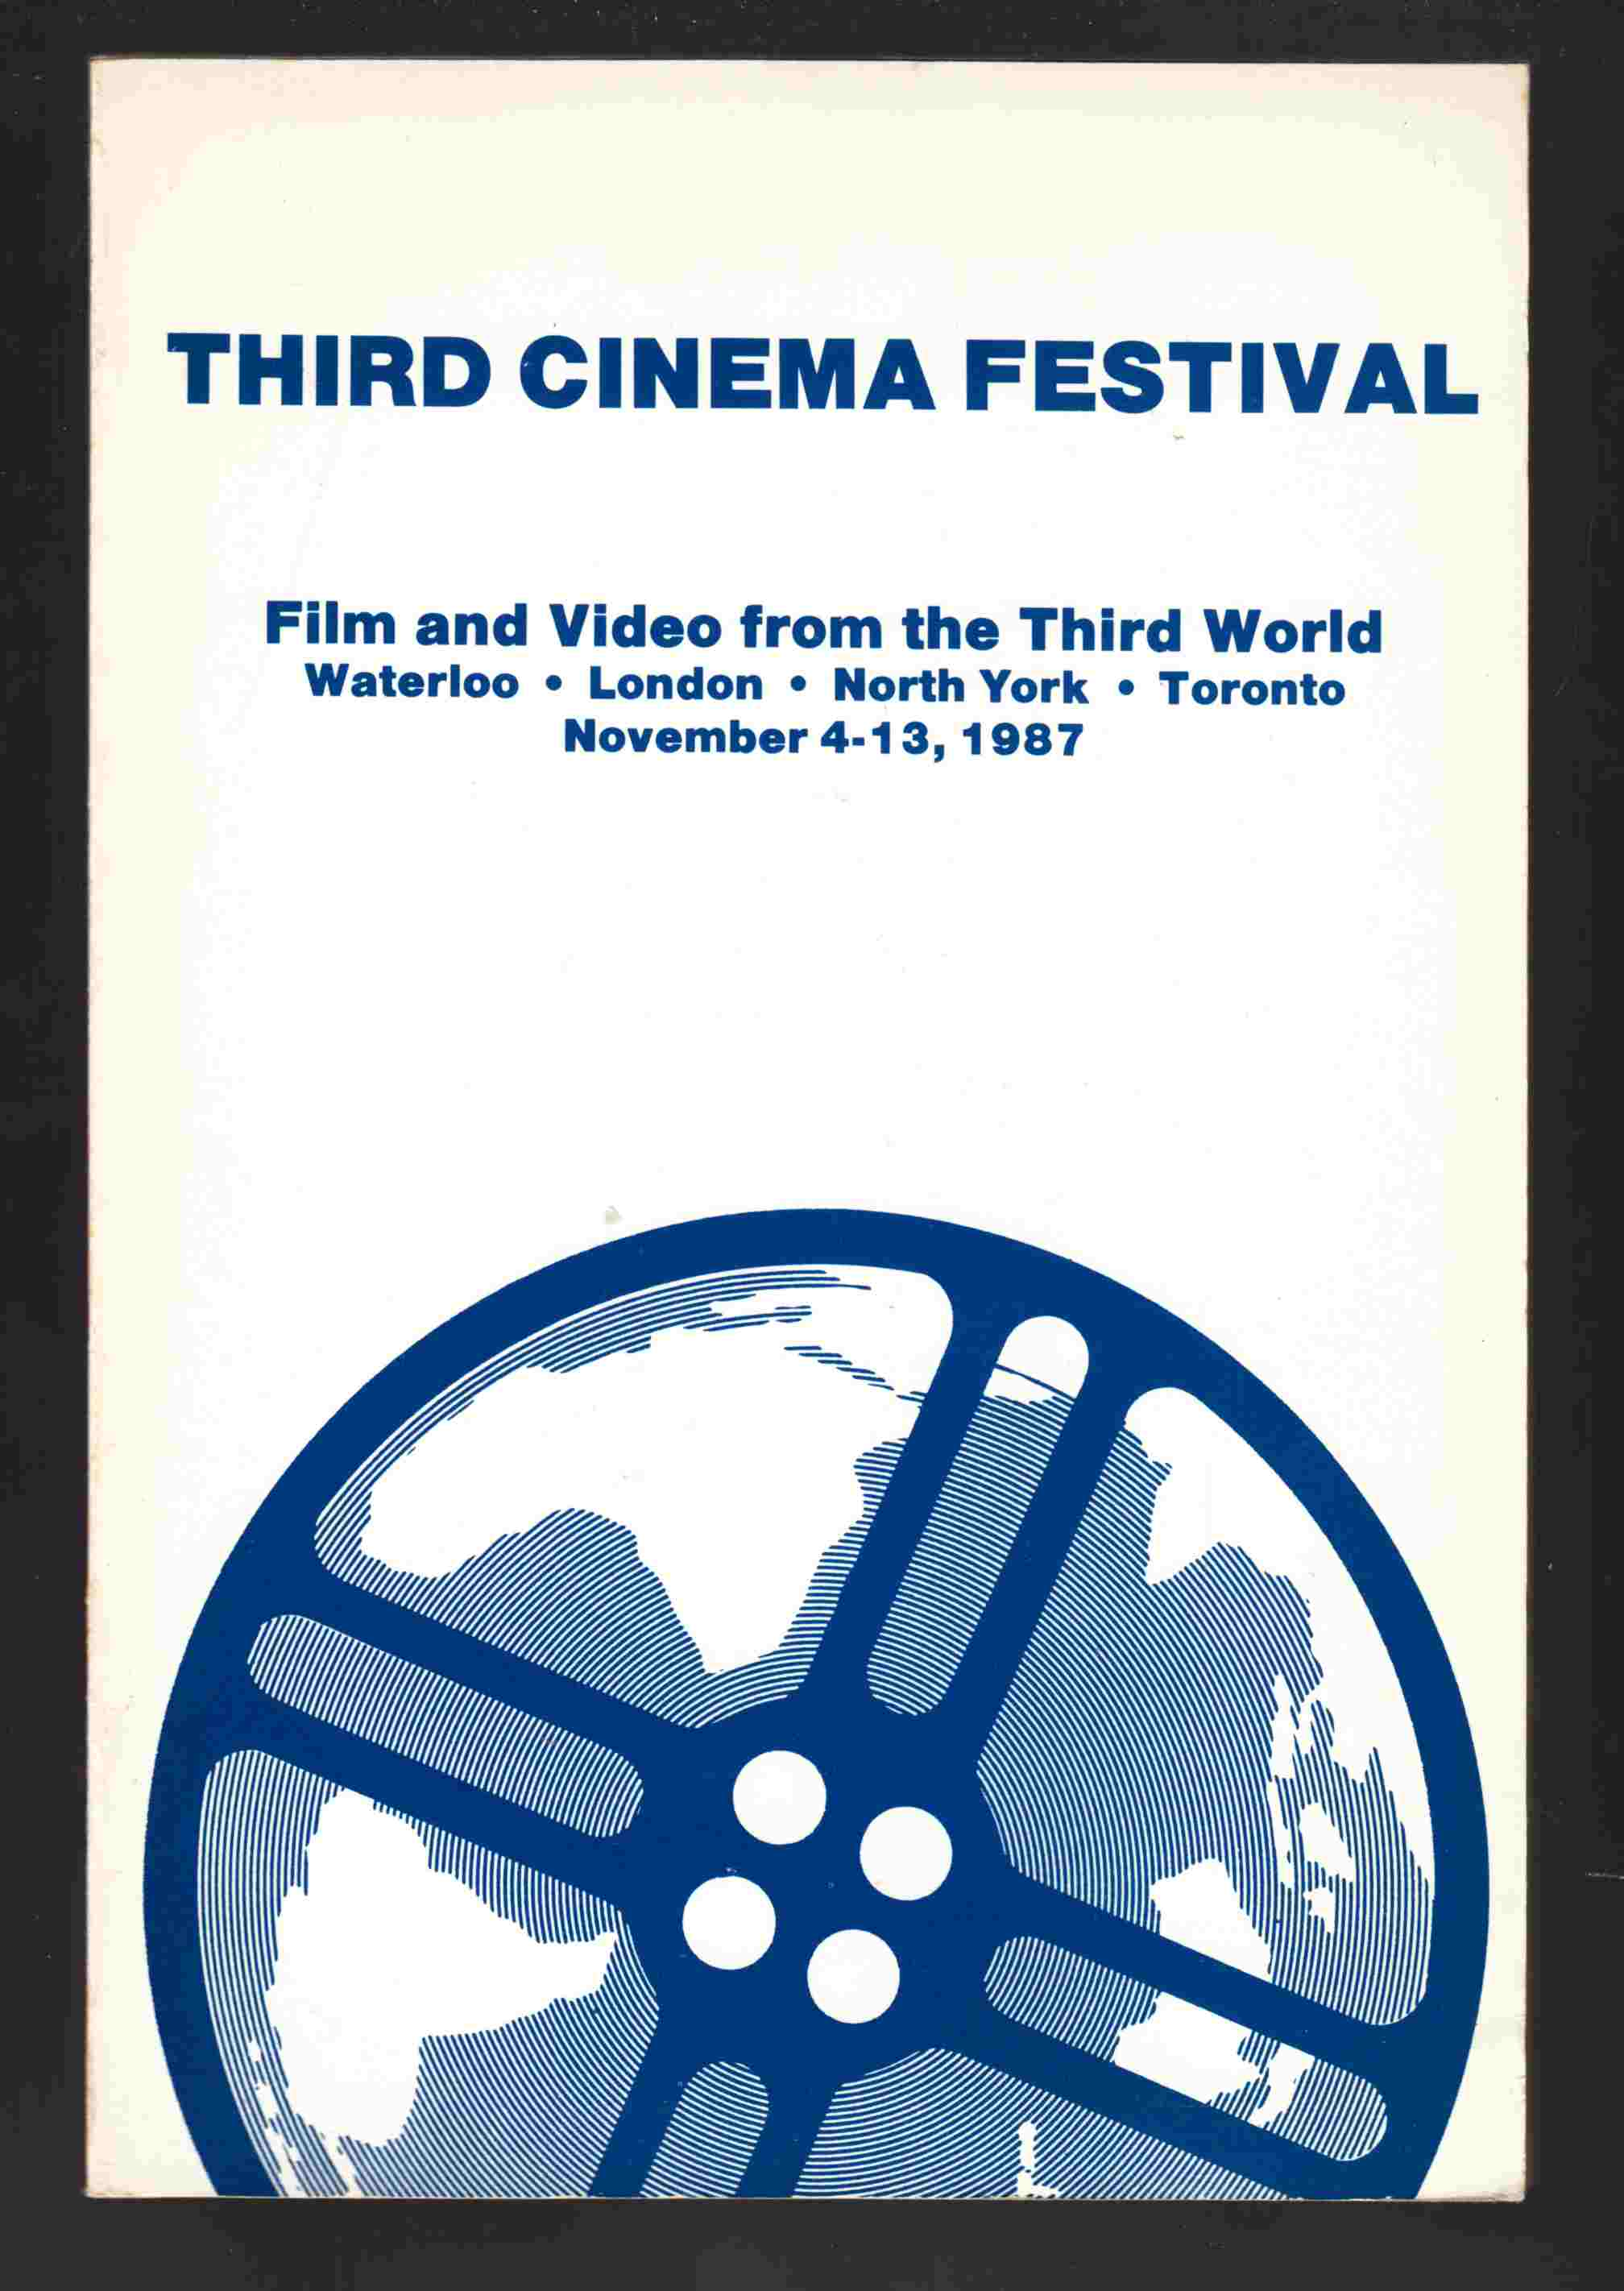 Image for Third Cinema Festival - Film and Video From the Third World November 4-13, 1987